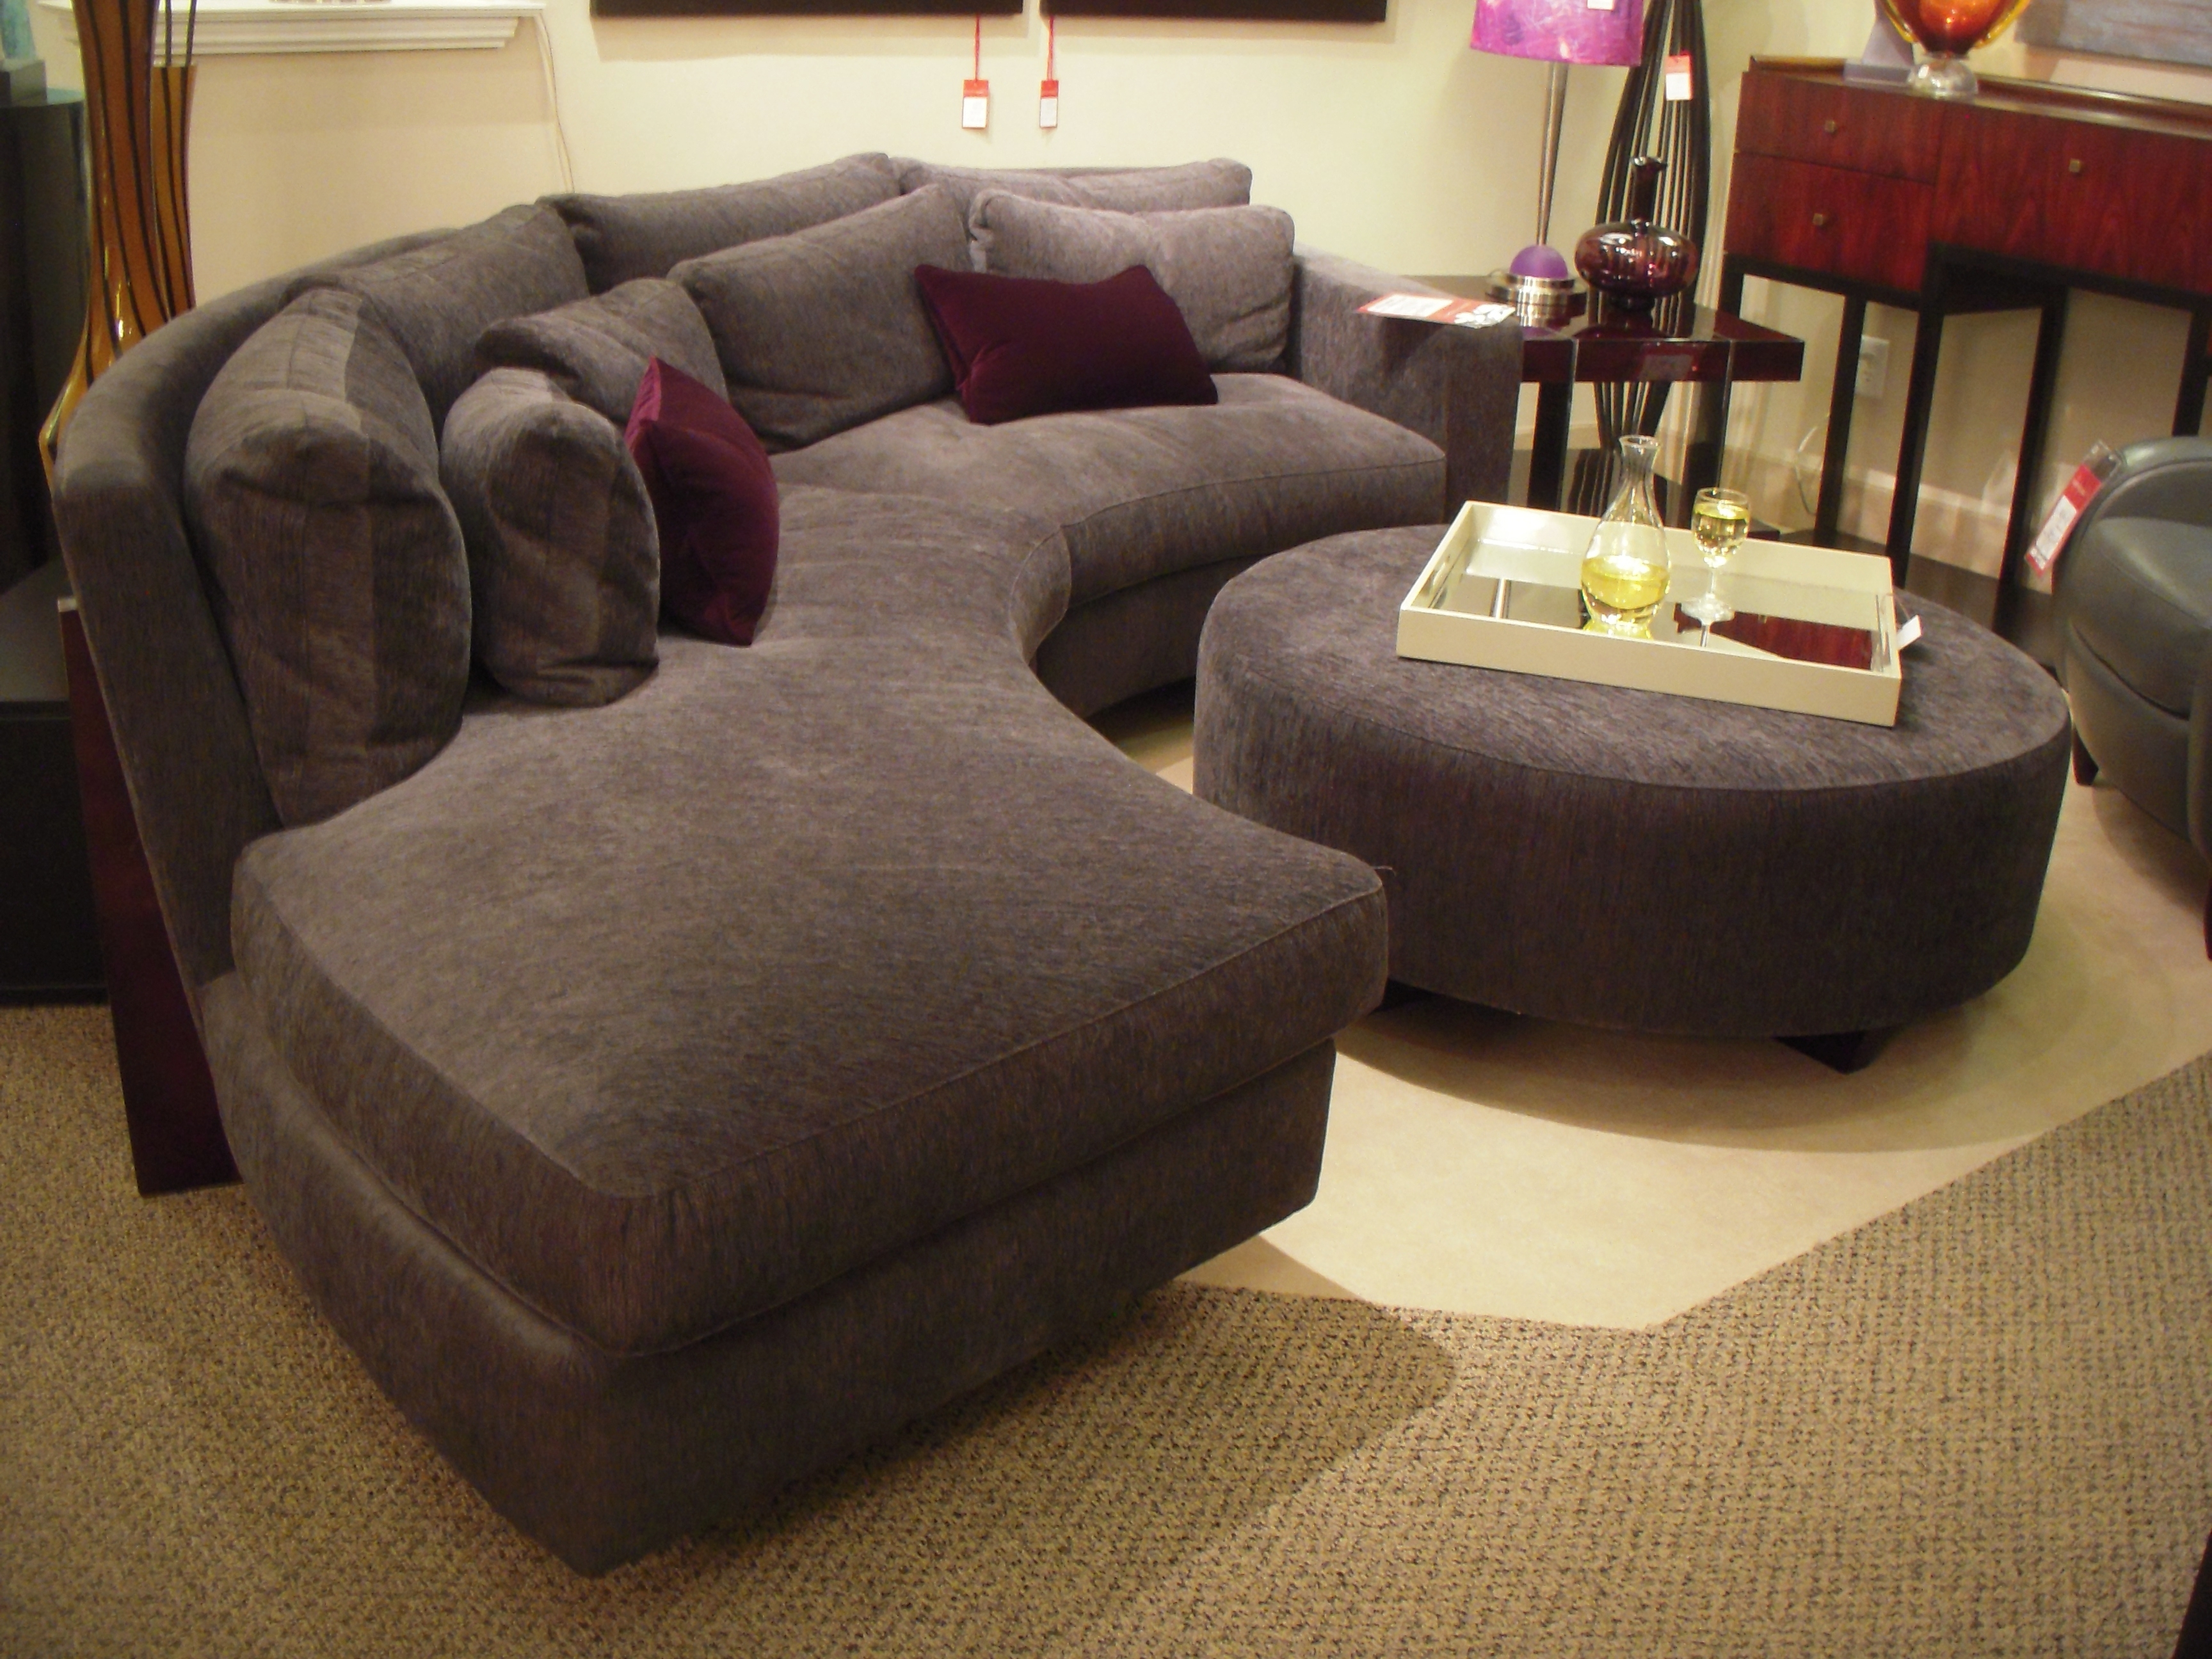 2018 Sectional Sofa Design: Top Images Cool Sectional Sofas Cool For Deep U Shaped Sectionals (View 6 of 15)